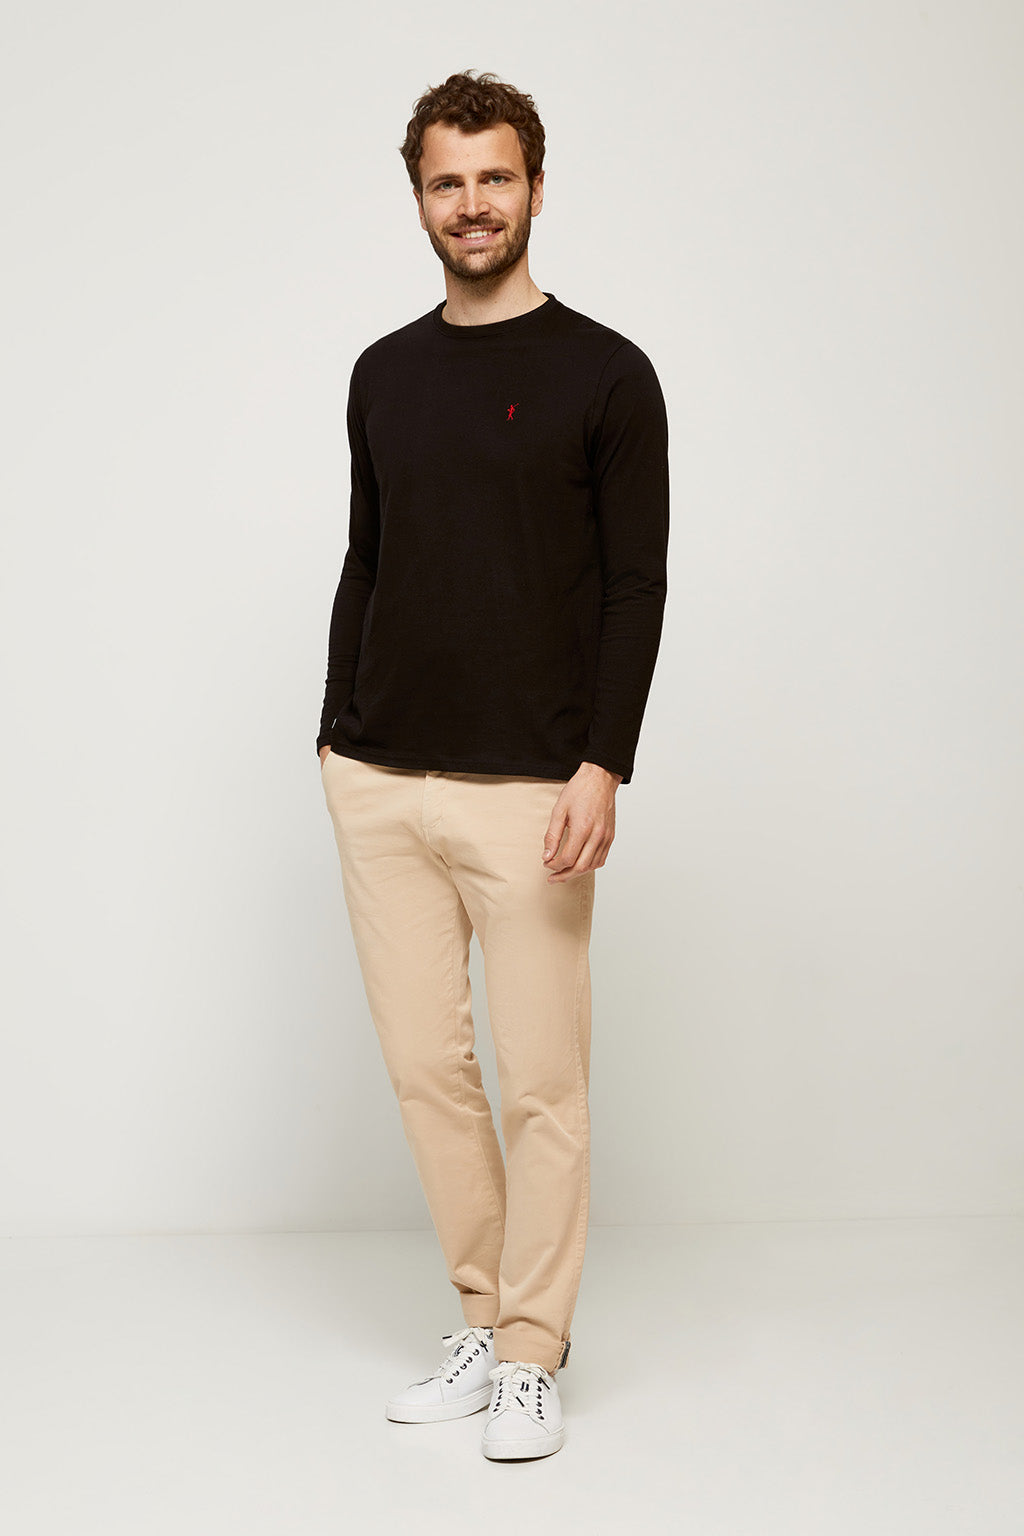 Black long sleeve tee with embroidered logo